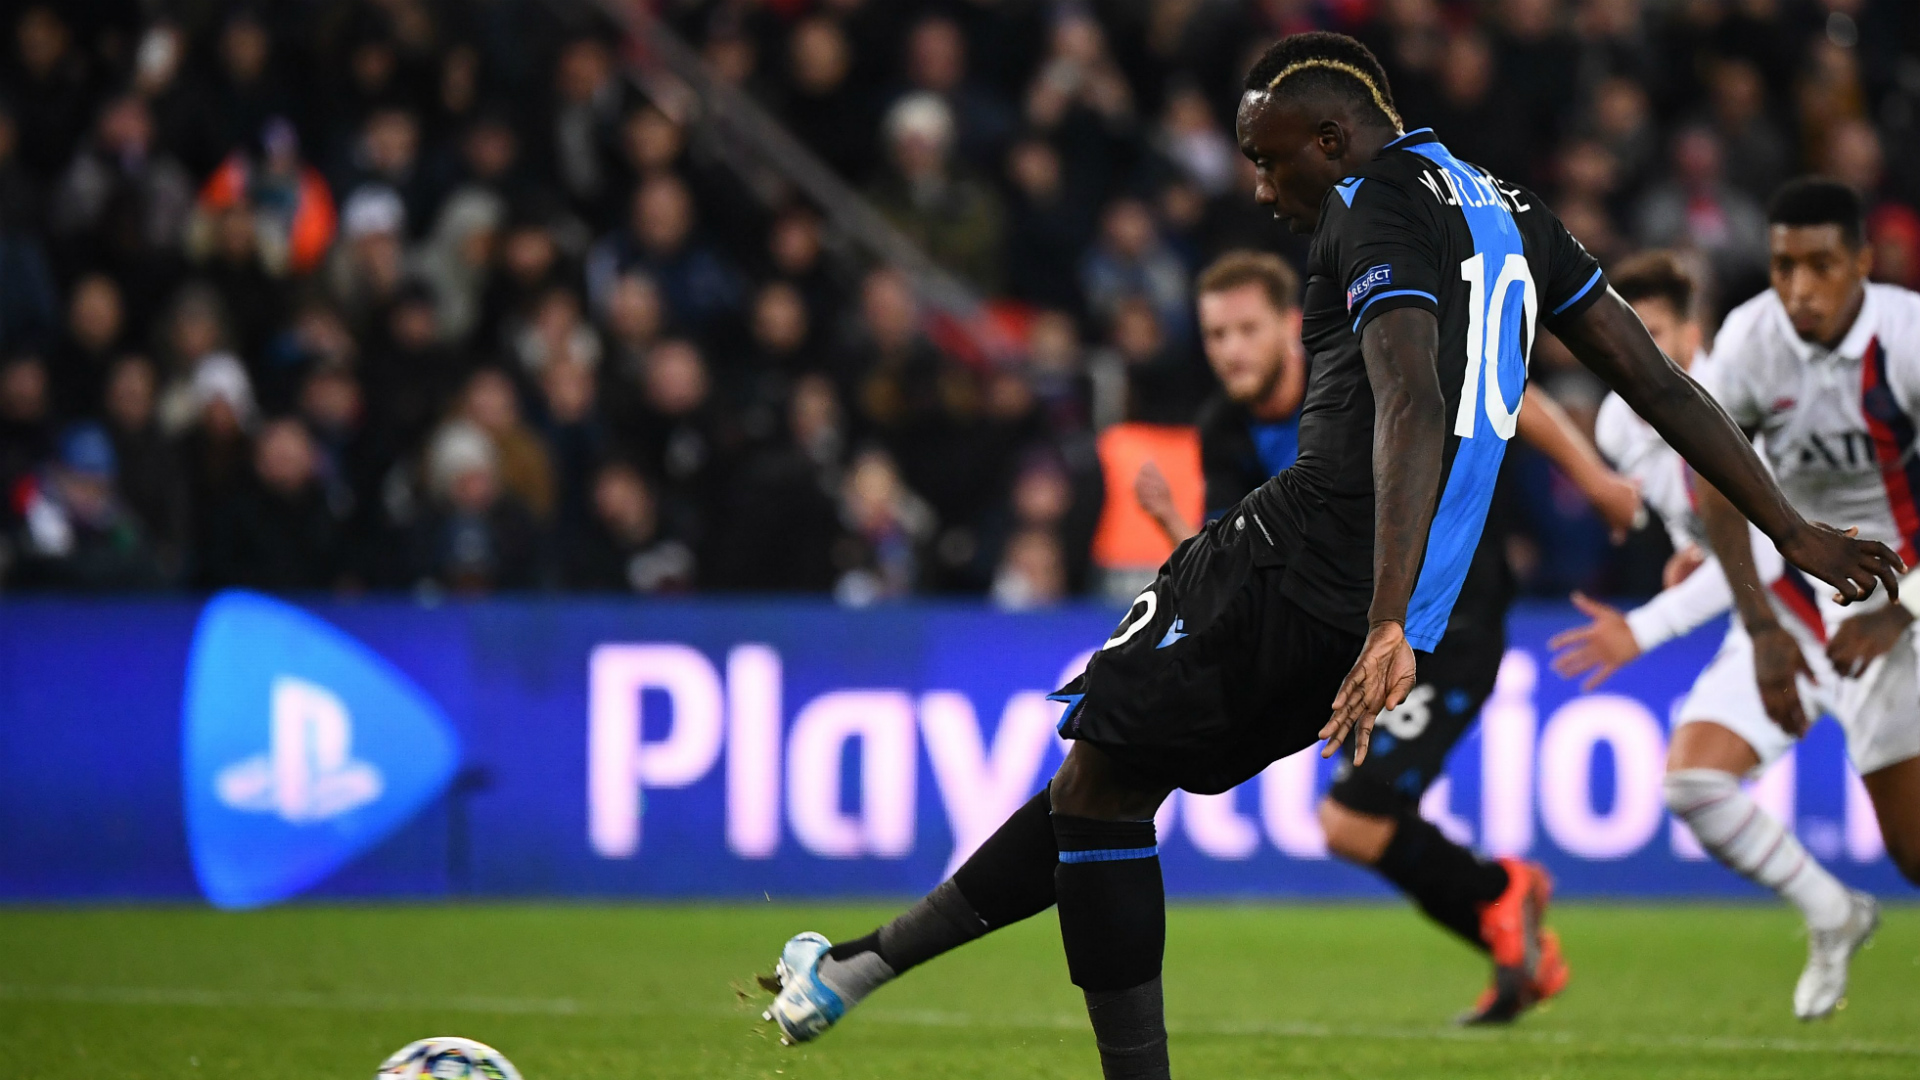 Diagne one of the best strikers in the world – Club Brugge's Deli